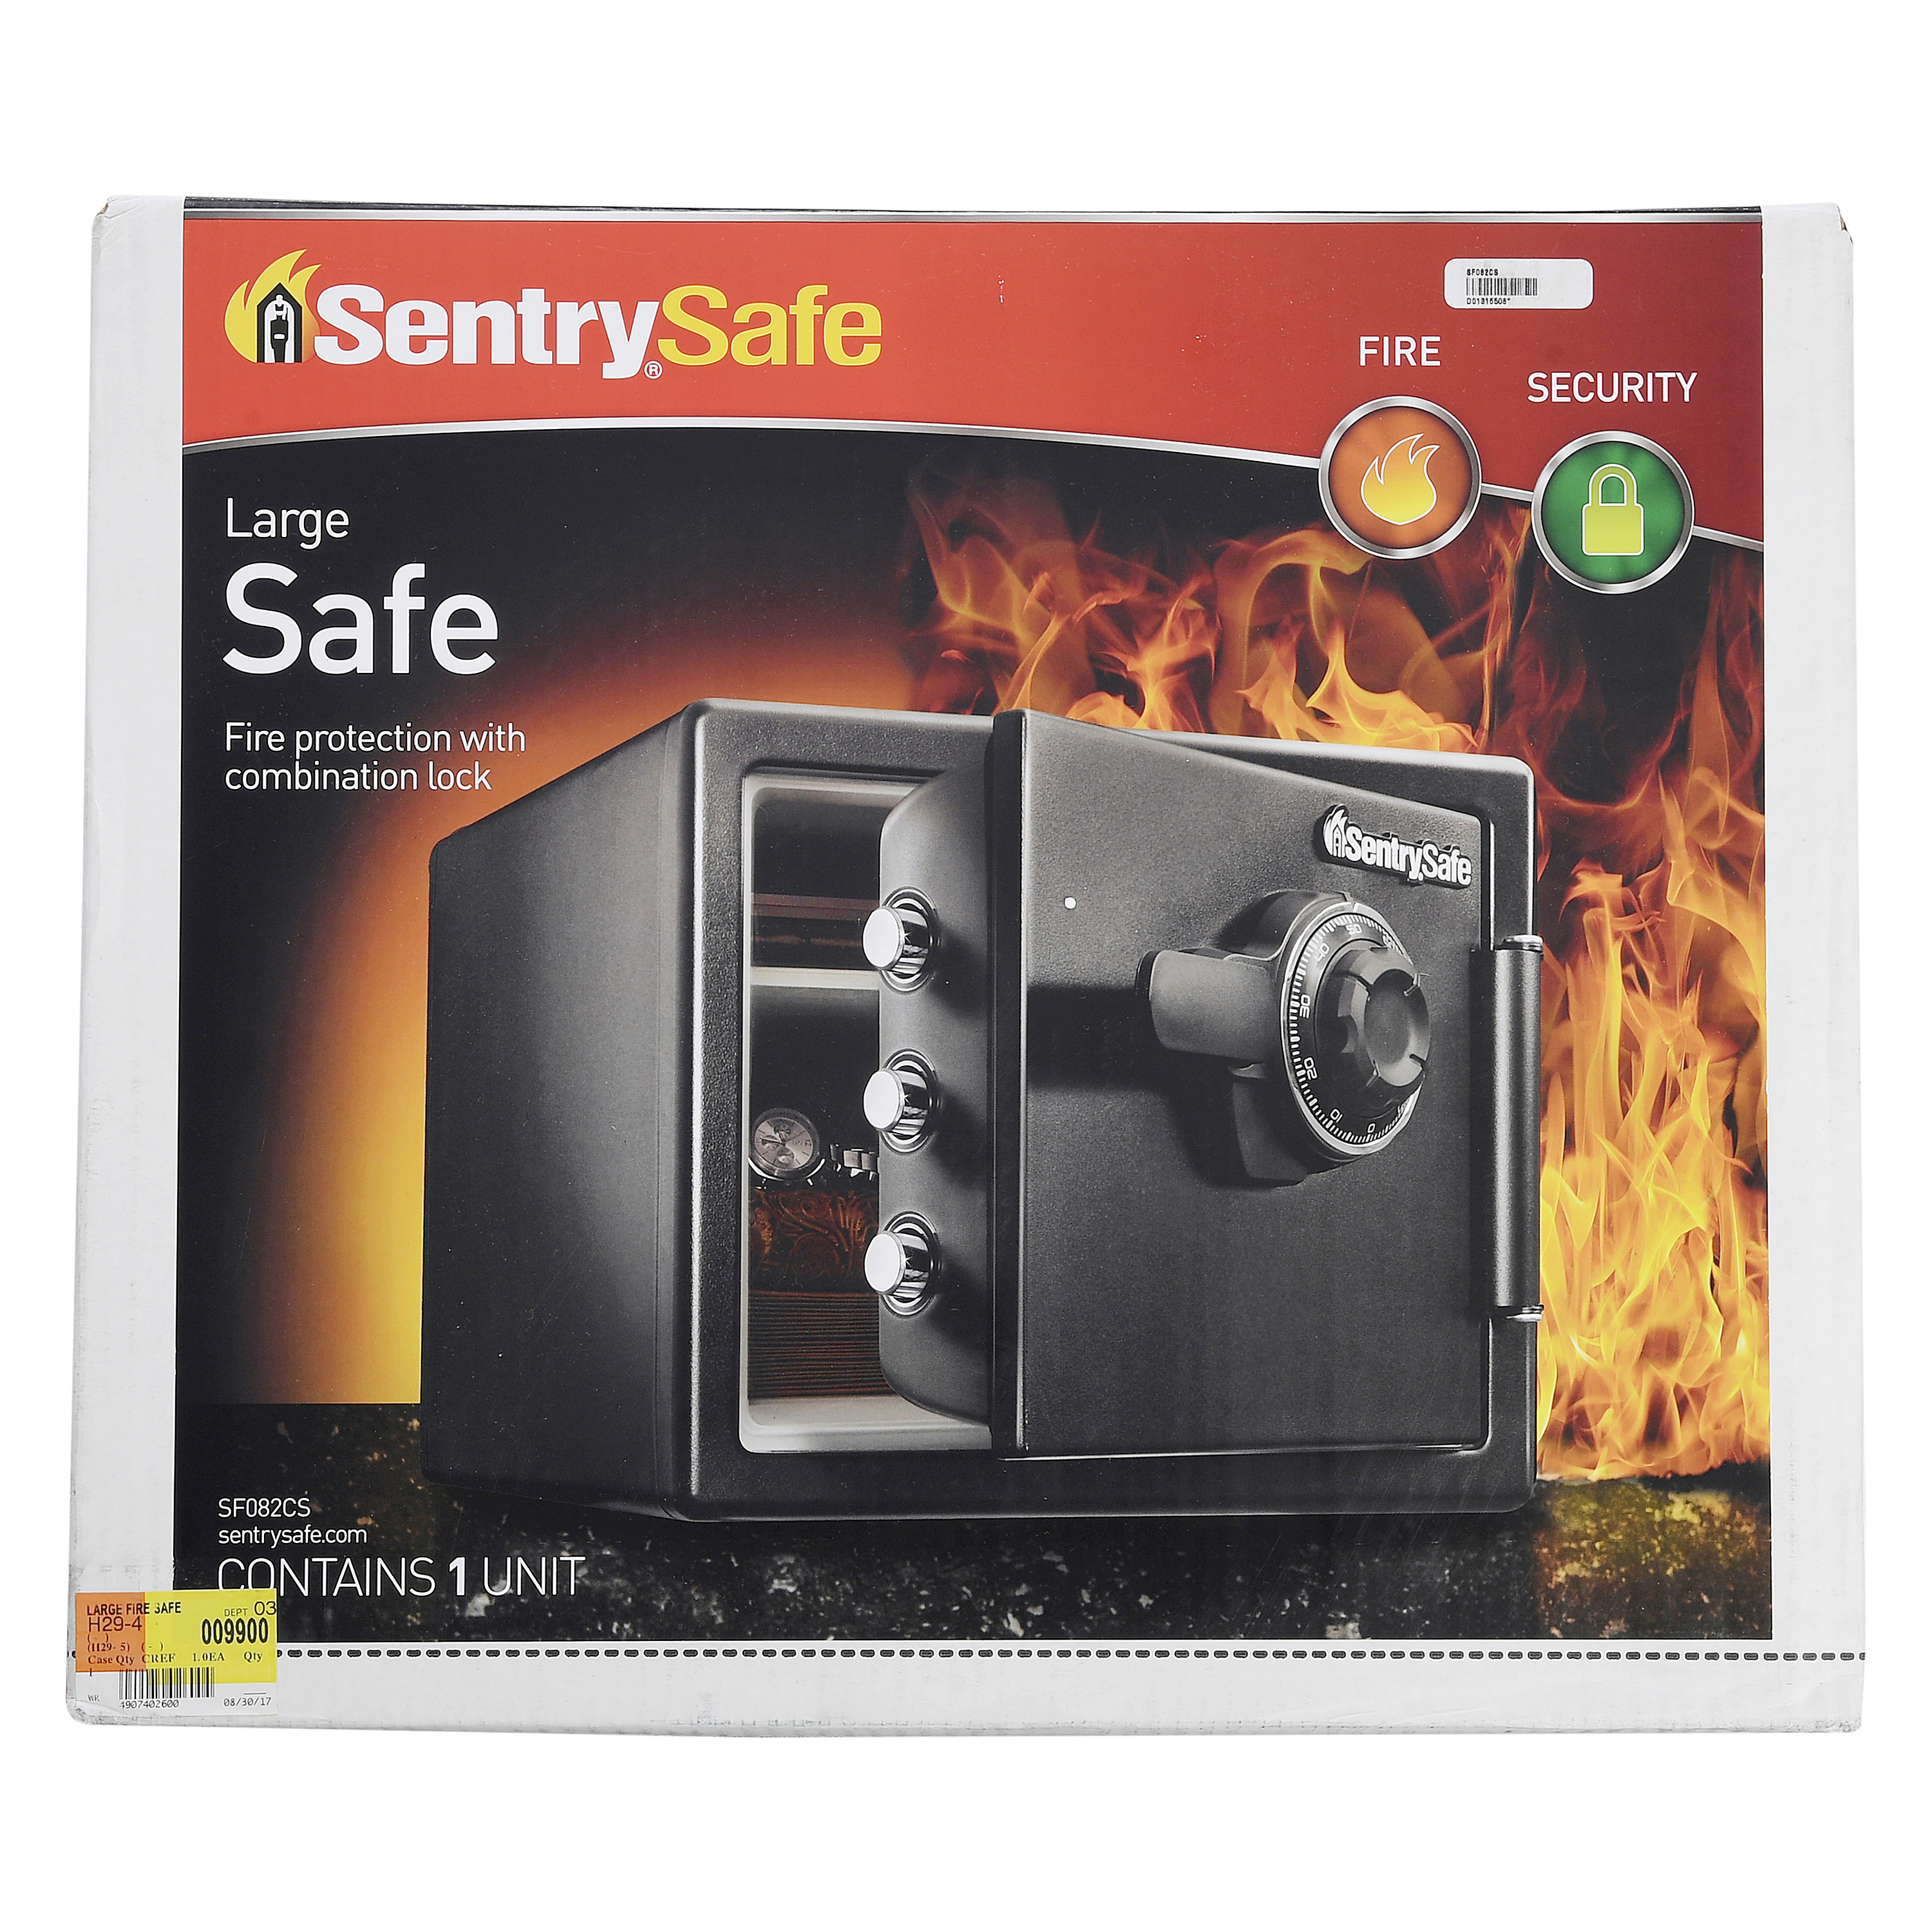 SentrySafe Large Fire Safe with Combo